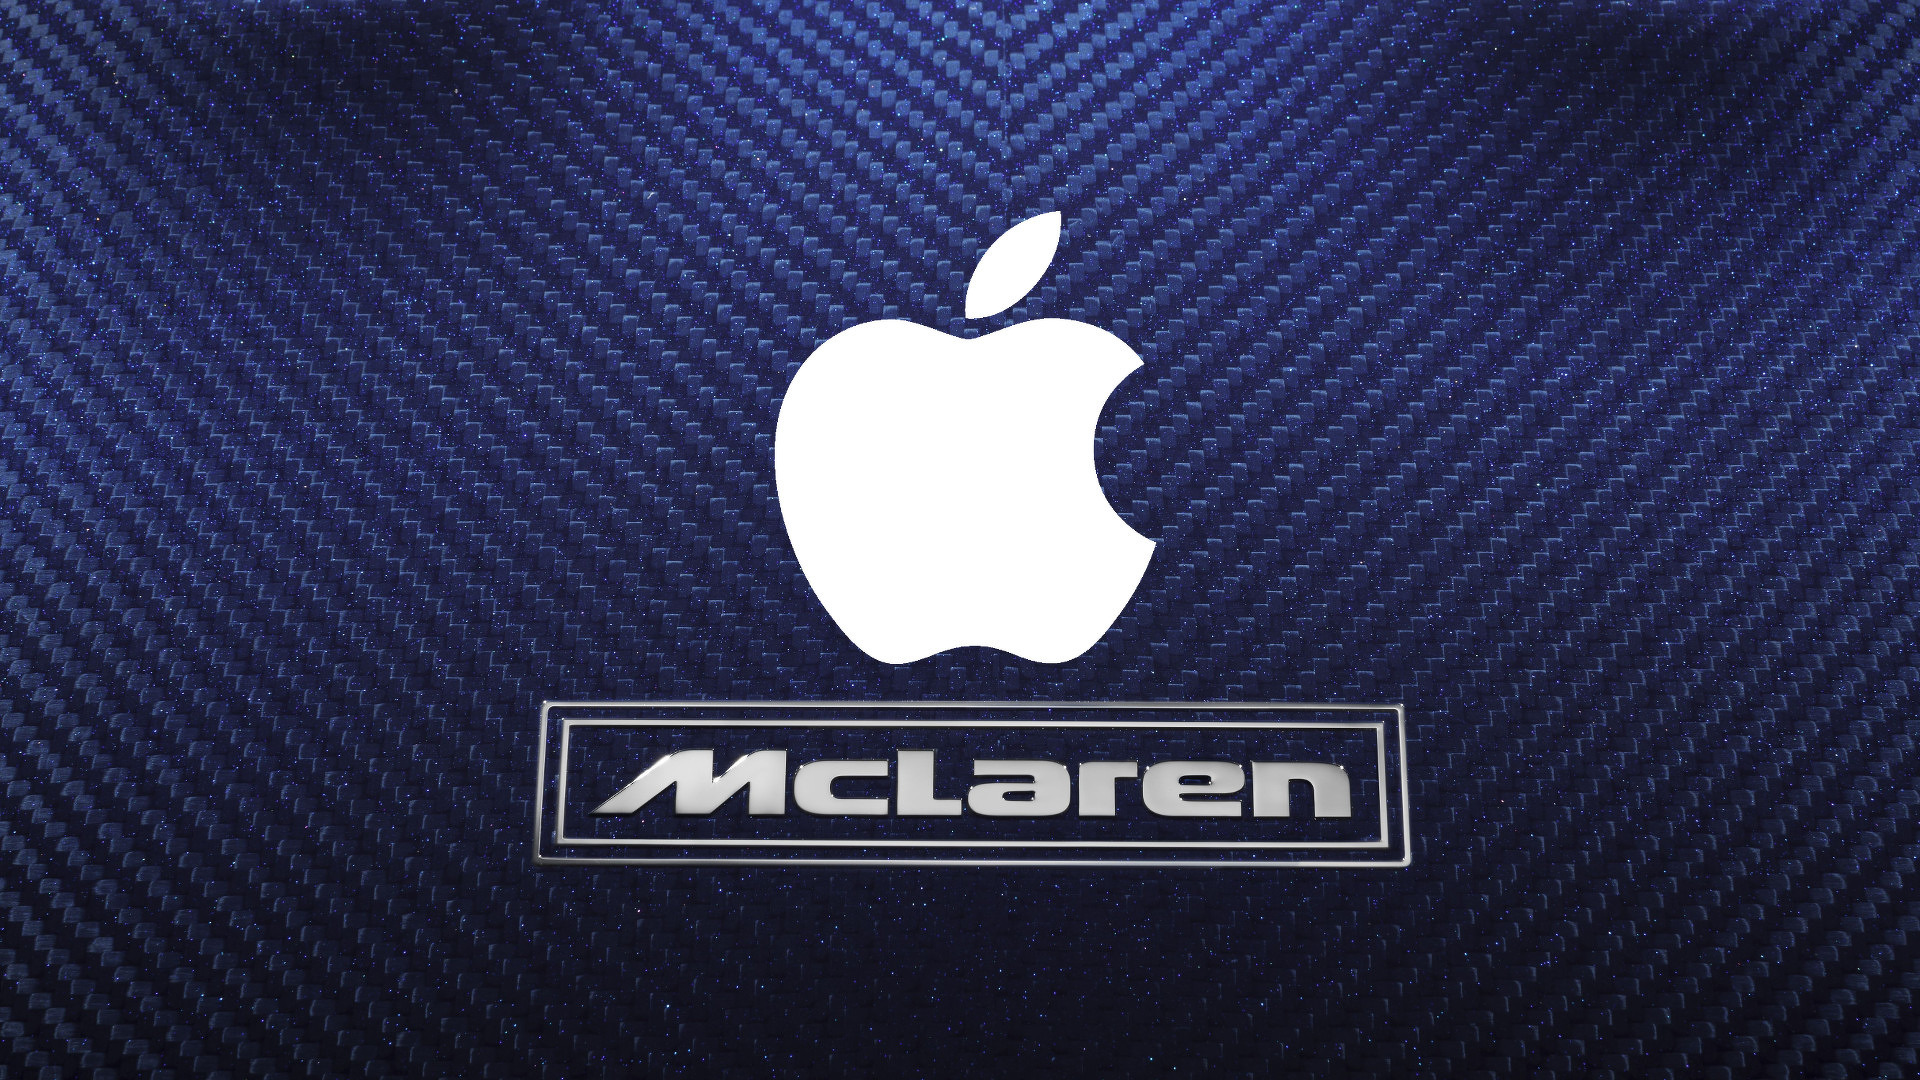 Apple and McLaren did hold talks despite denials